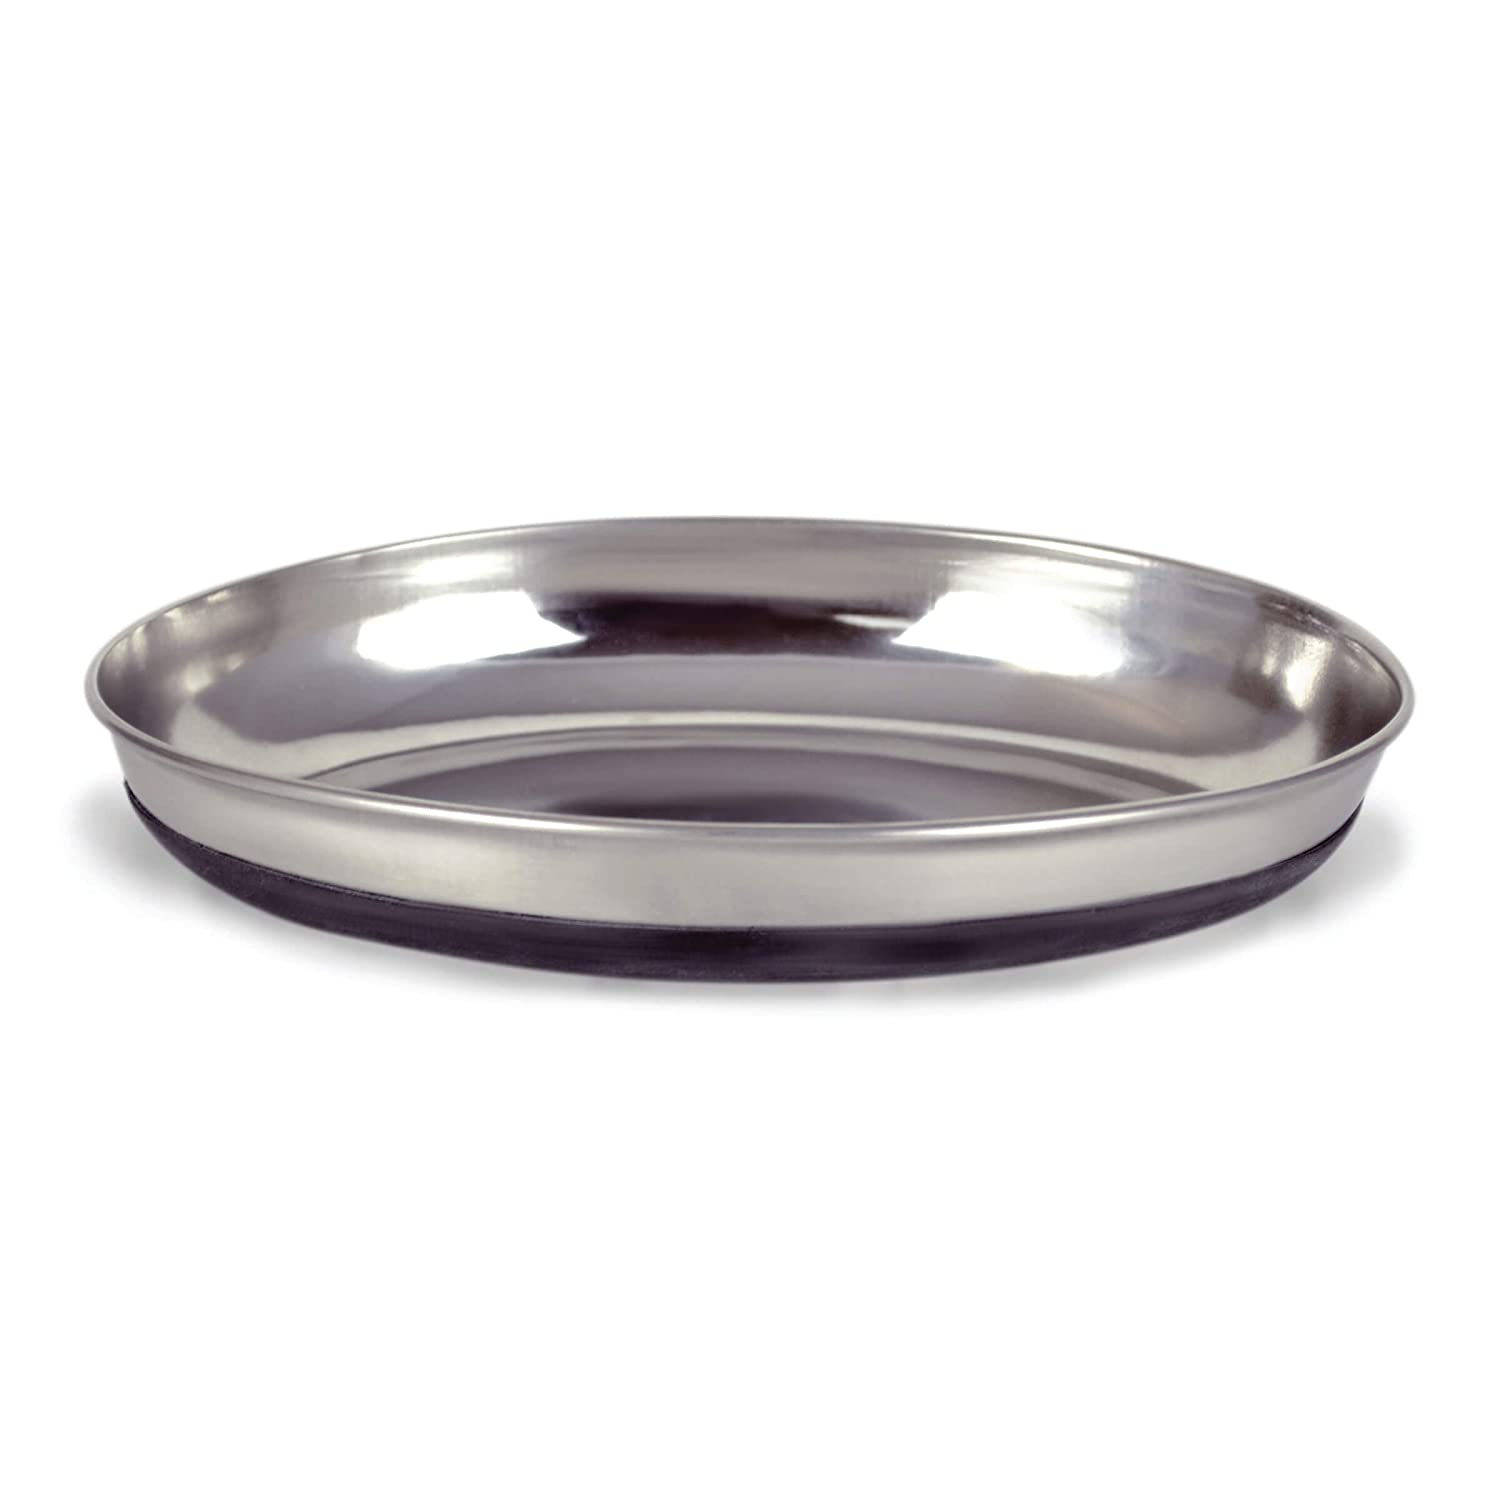 Our Pets Dish Oval Cat Rubber Bottom Pet Bowl